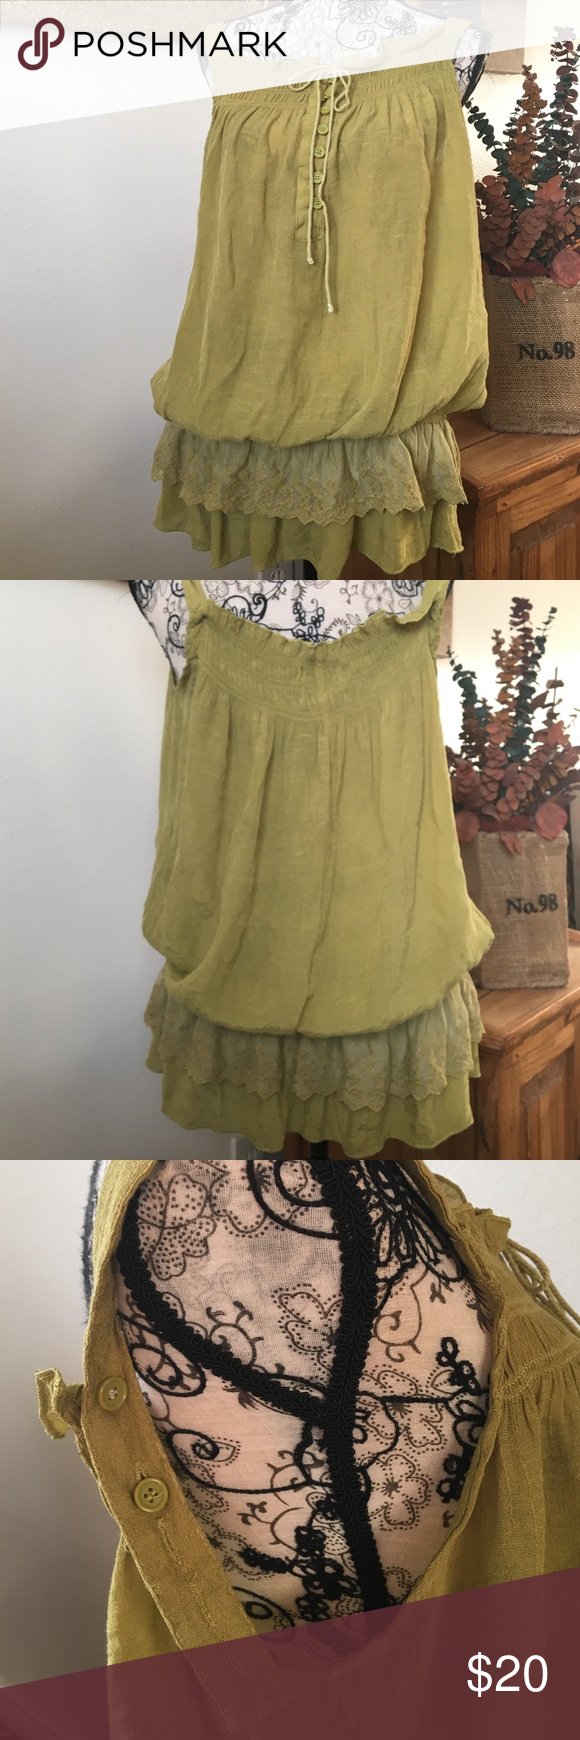 CAREN SPORT TOP Olive green top. Elastic waist garnished with ruffles and lace, ties in front and adjustable straps. This top is gorgeous!!  Tag was removed but I would say xxl Caren sport Tops Blouses